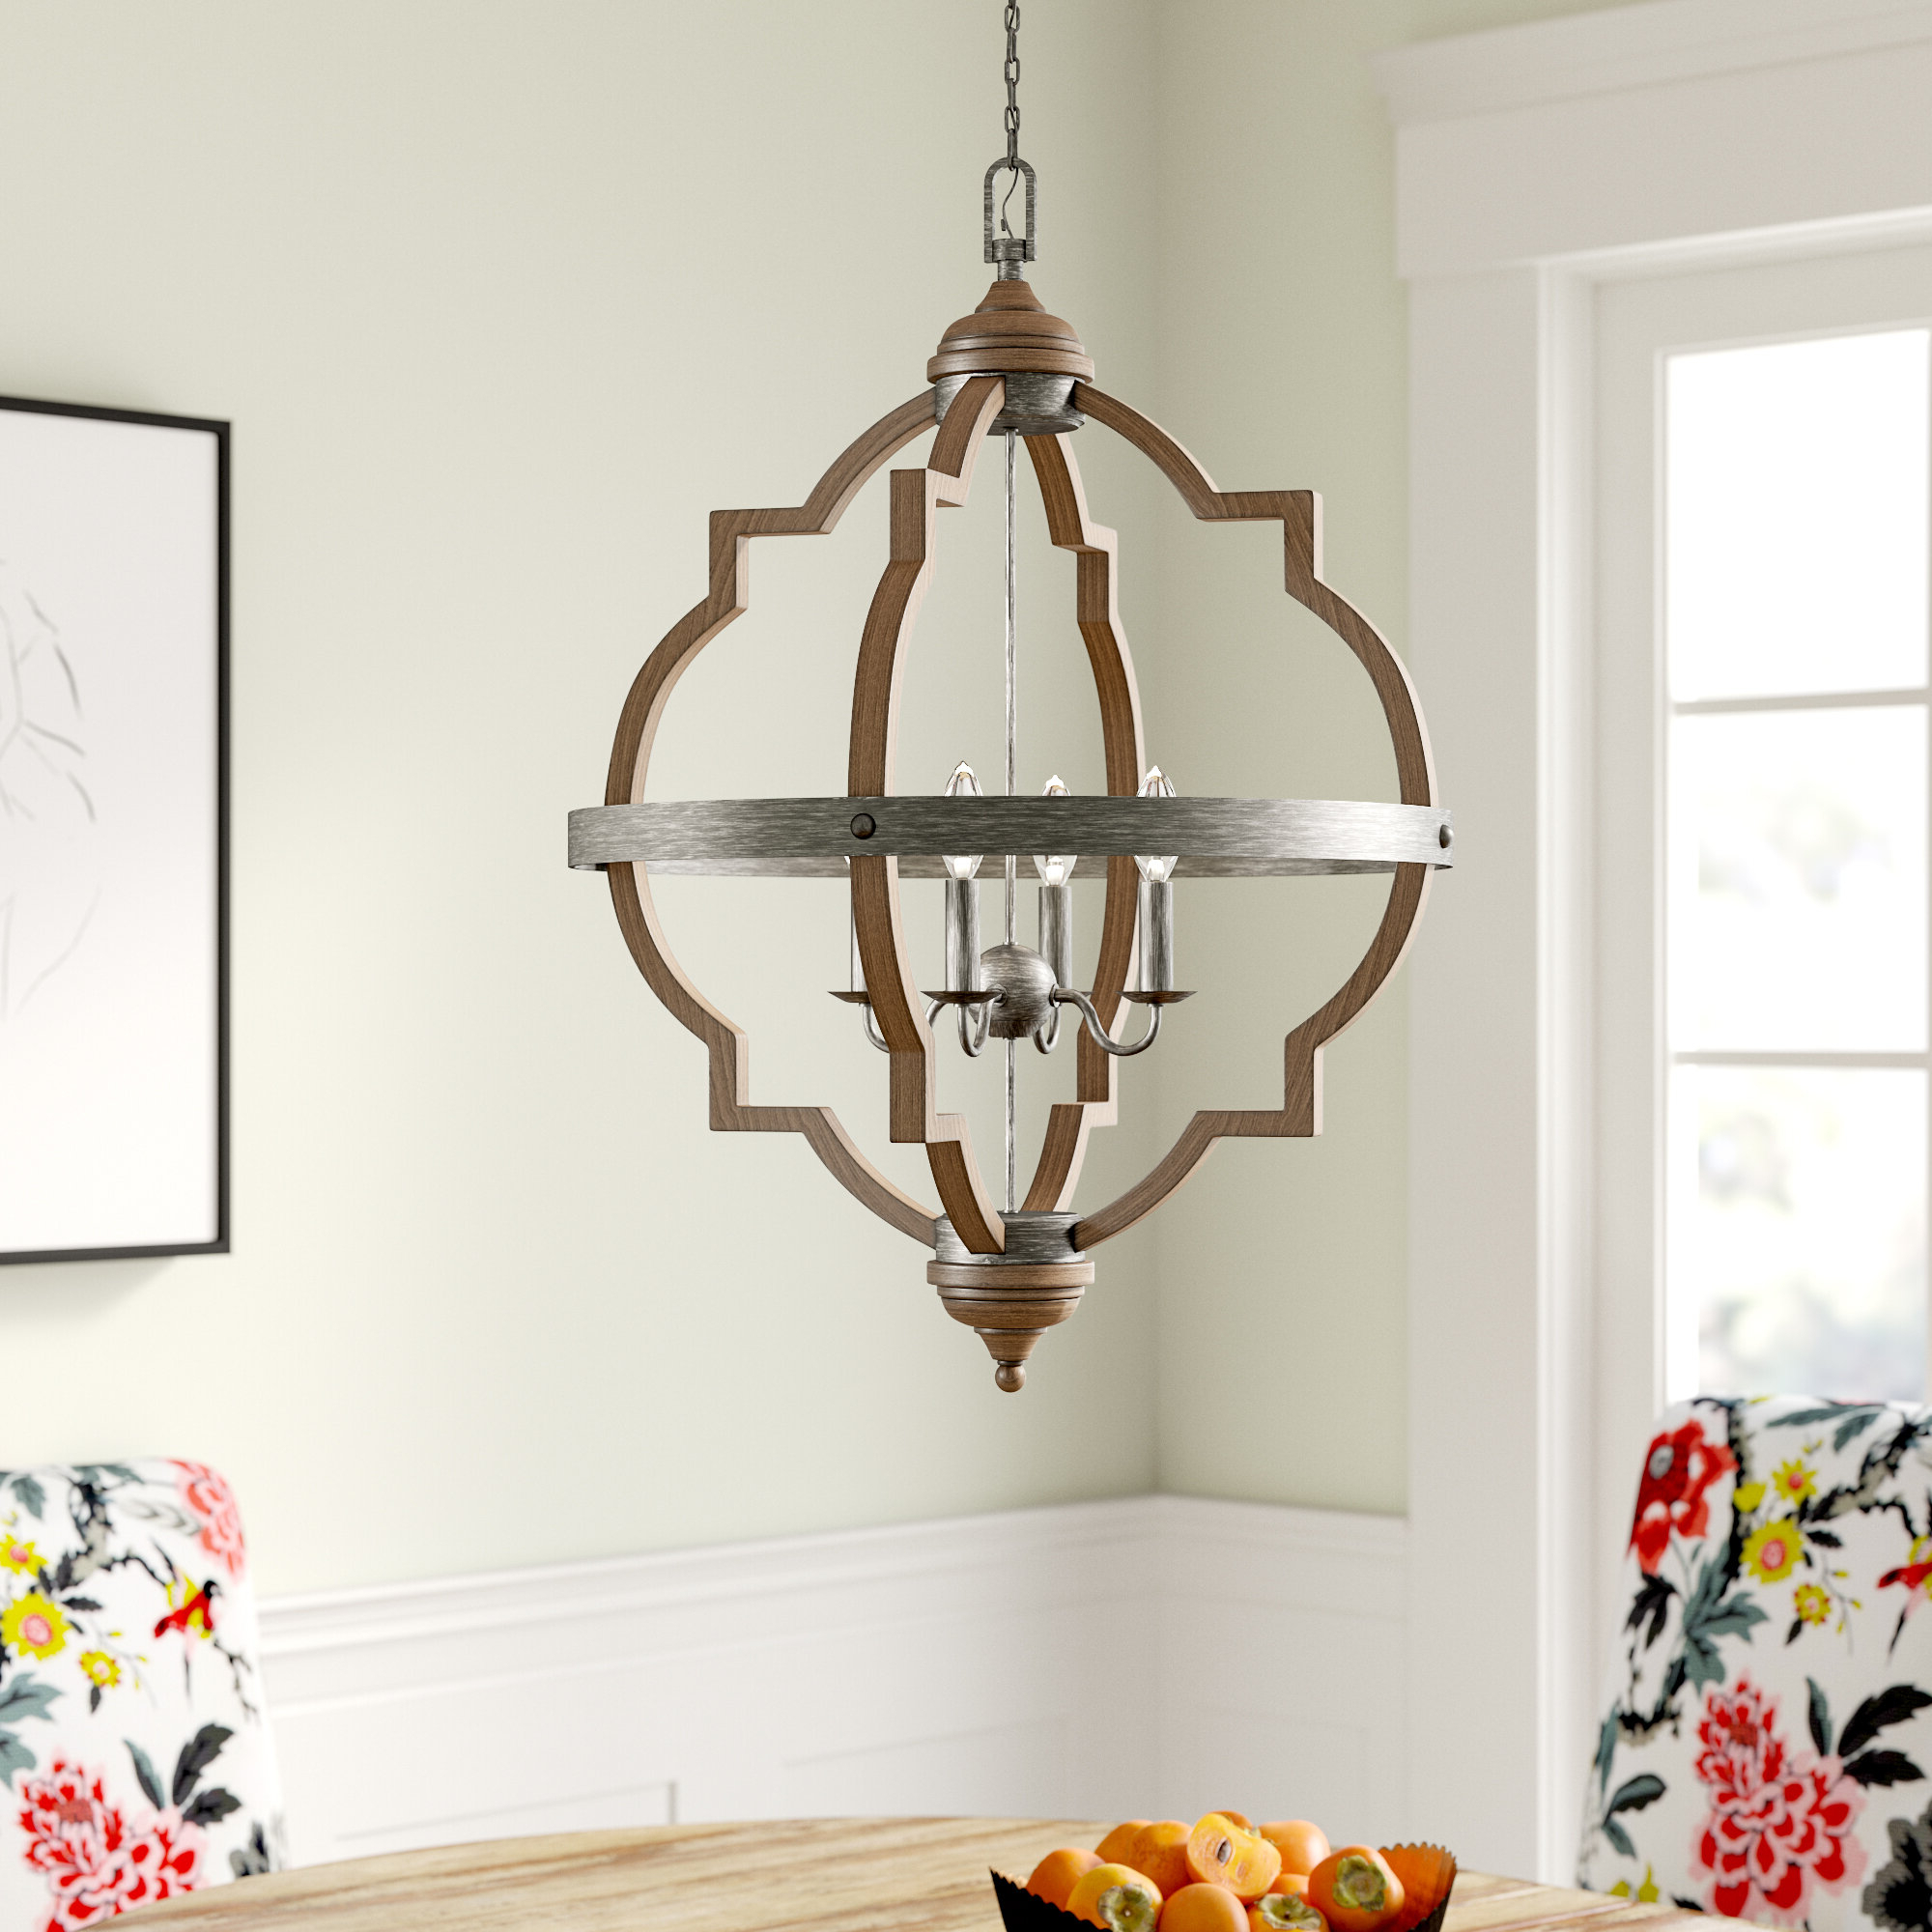 Bennington 4 Light Candle Style Chandelier Within Popular Dailey 4 Light Drum Chandeliers (View 8 of 20)